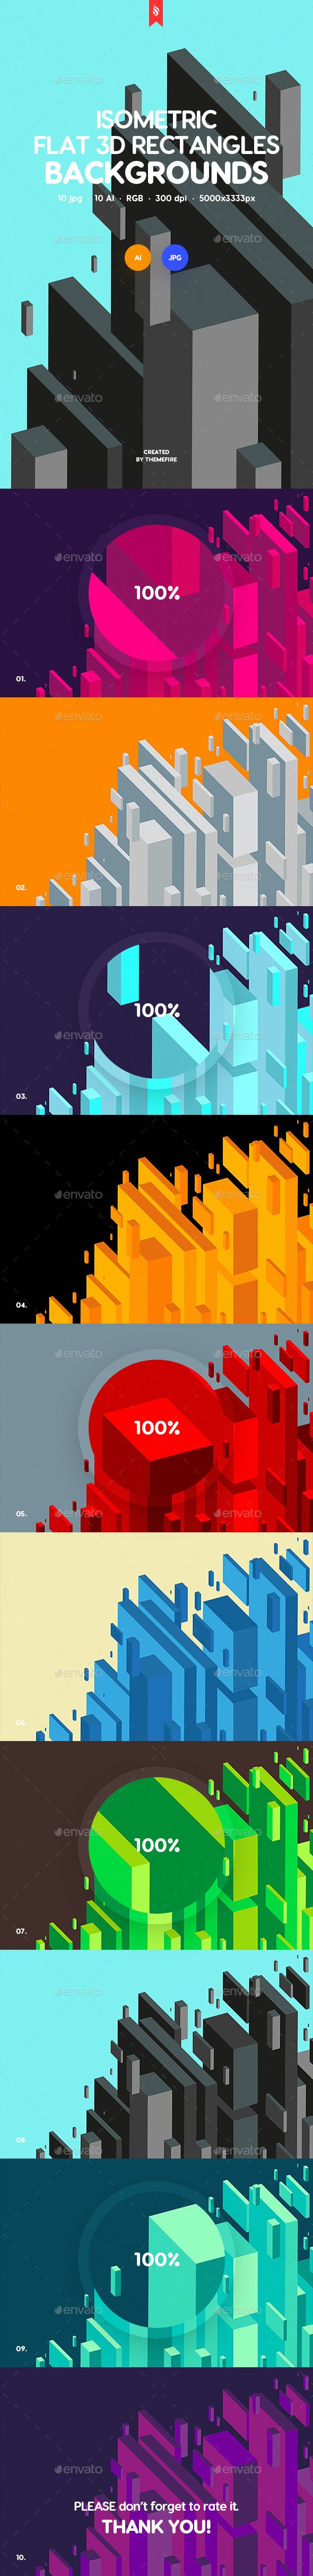 #Isometric #Flat 3D #Rectangles Backgrounds - Abstract Backgrounds